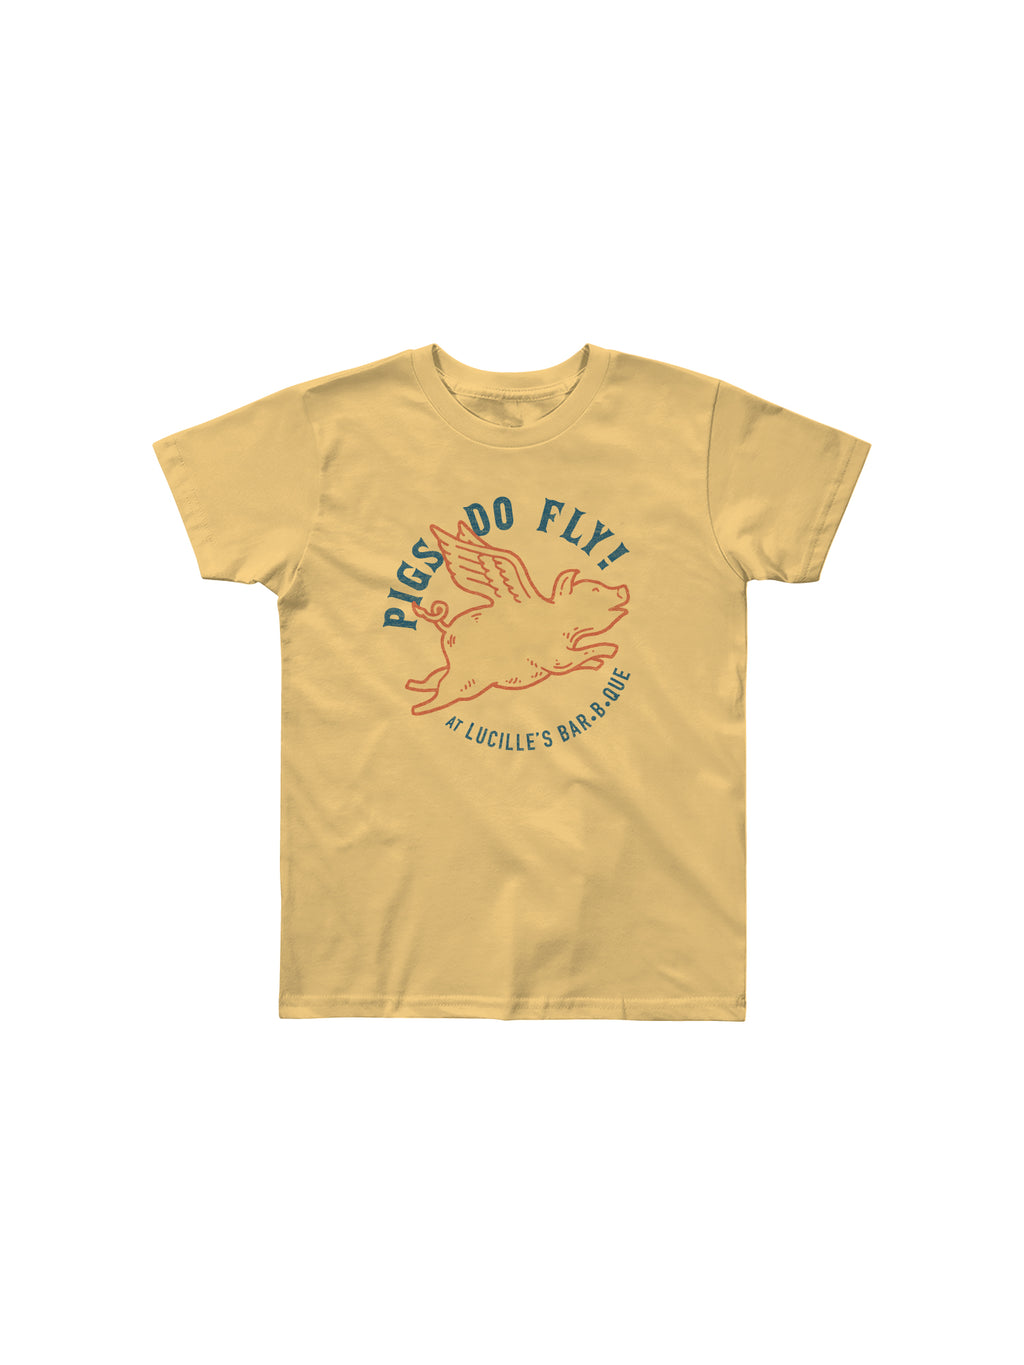 PIGS DO FLY YOUTH TSHIRT (BANANA CREAM) - Anderson Bros Design and Supply